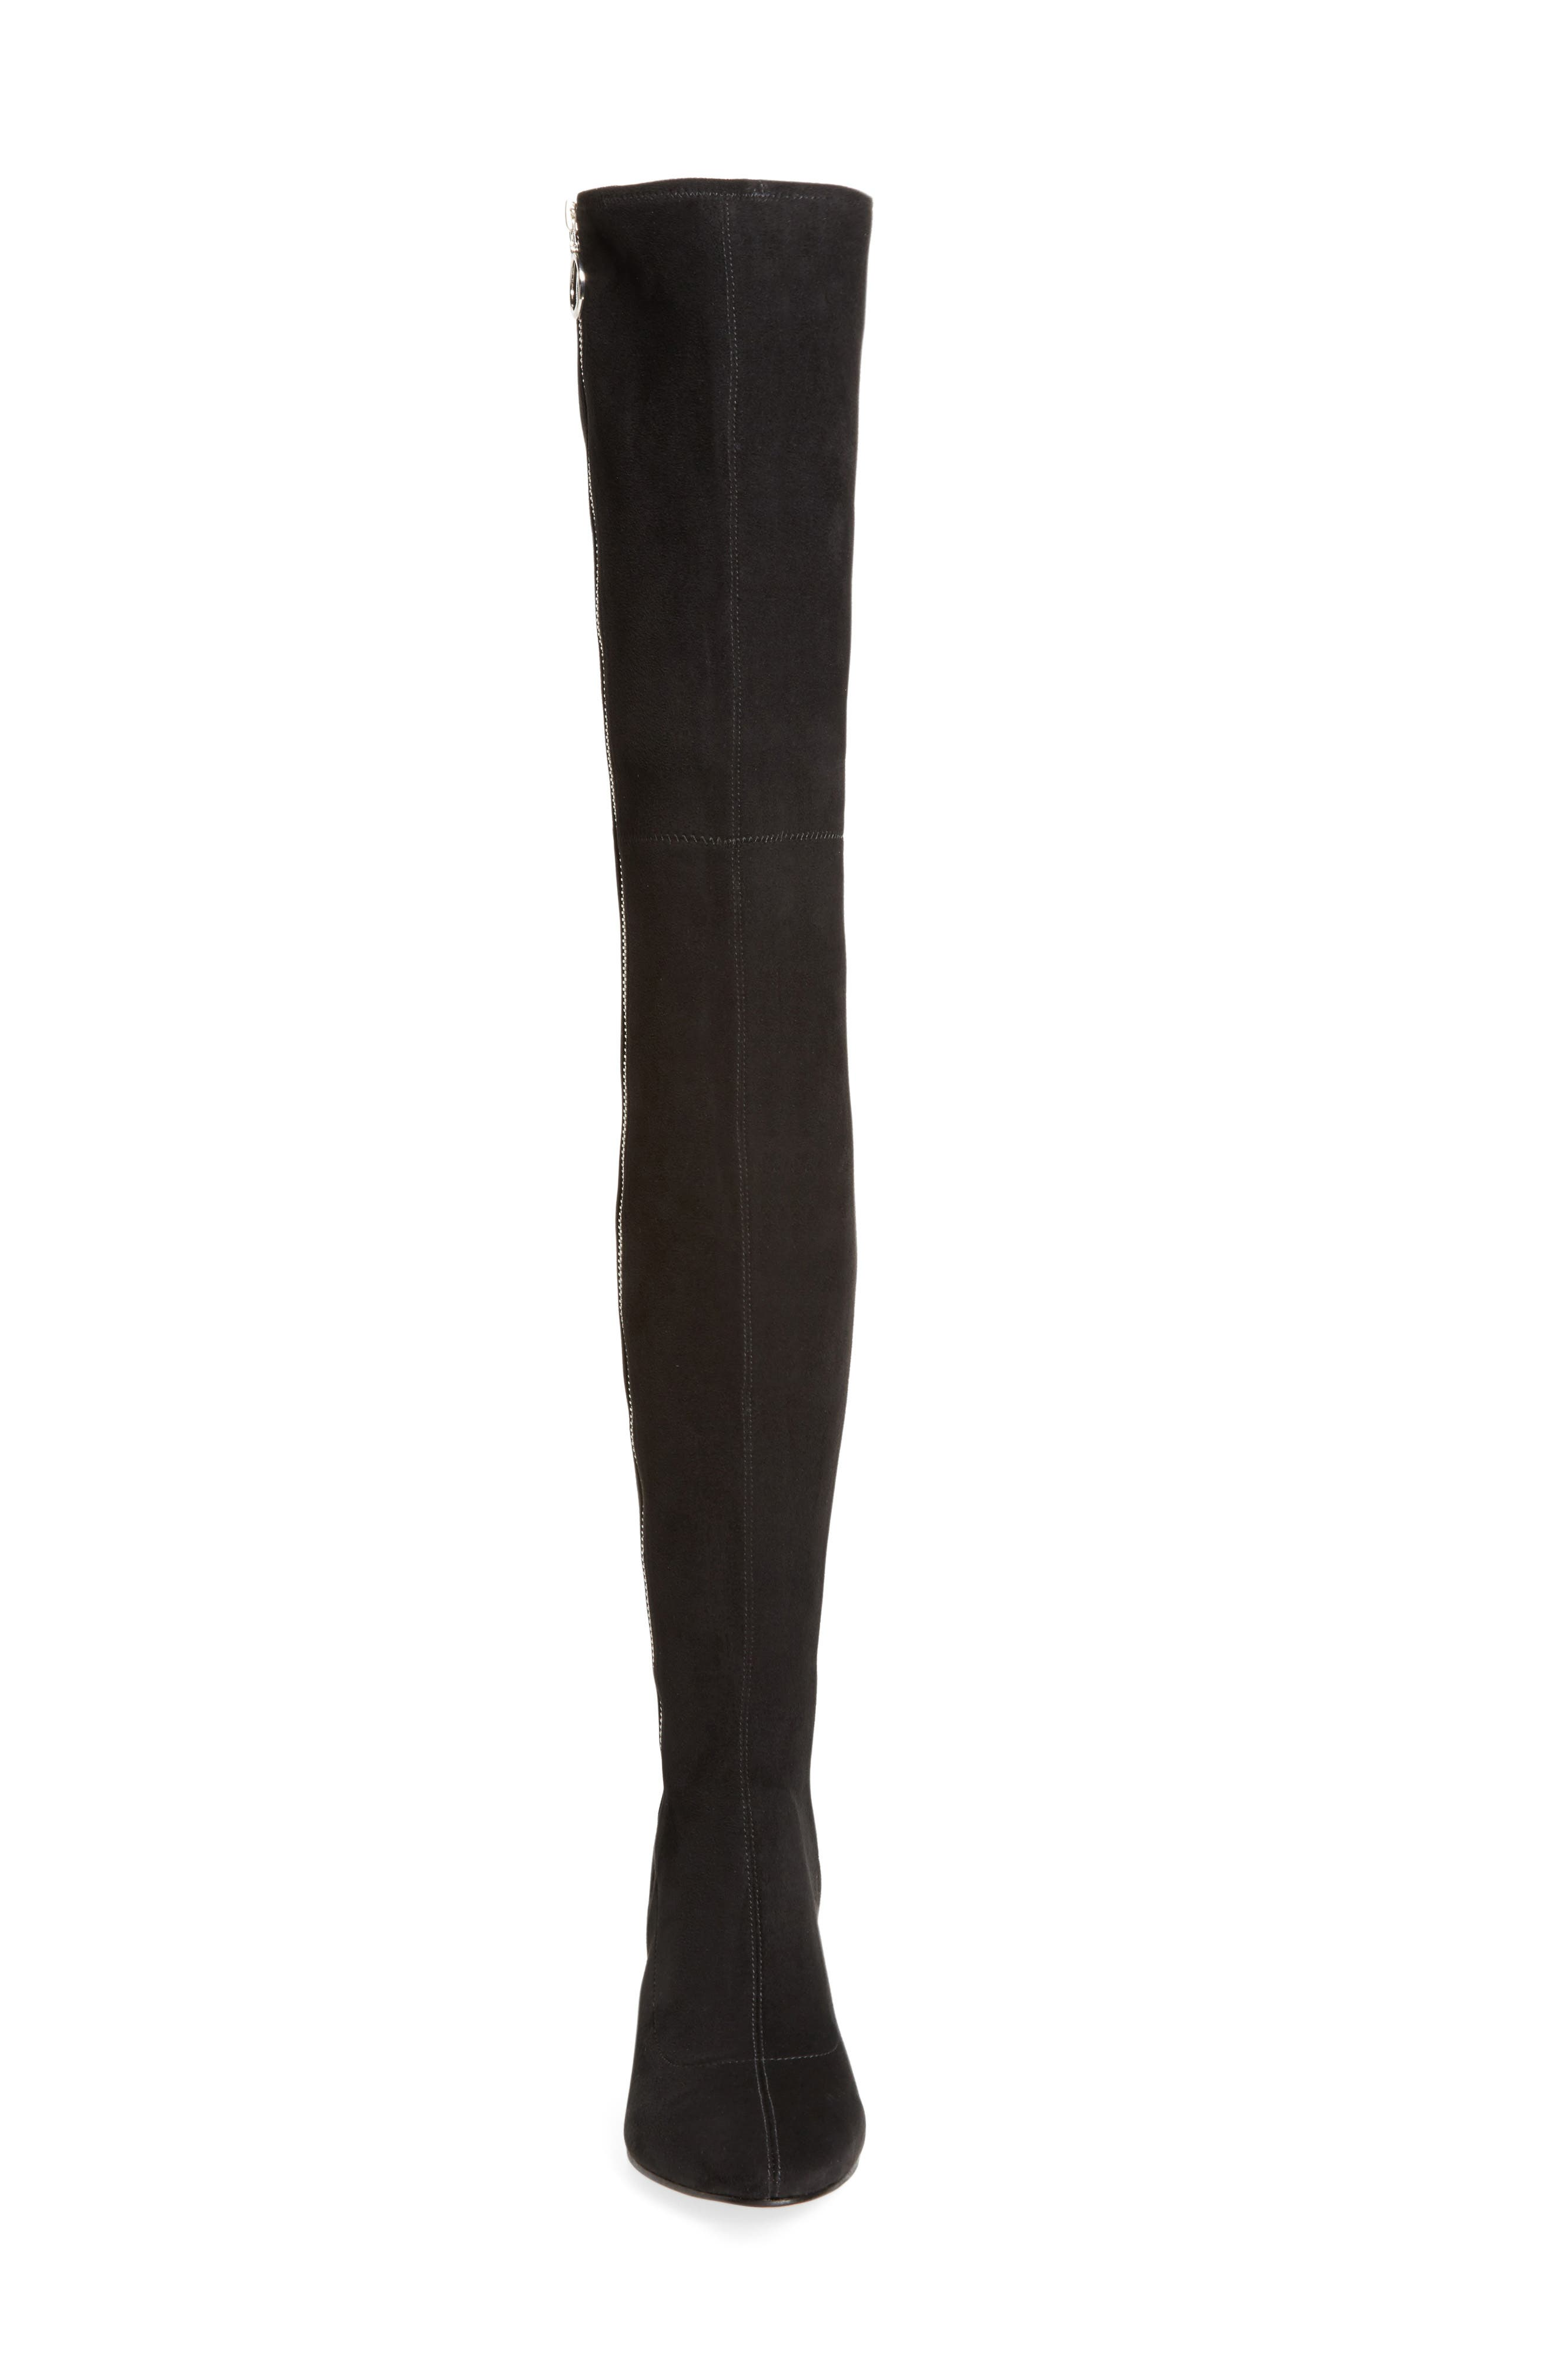 Vix Thigh High Boot,                             Alternate thumbnail 4, color,                             001